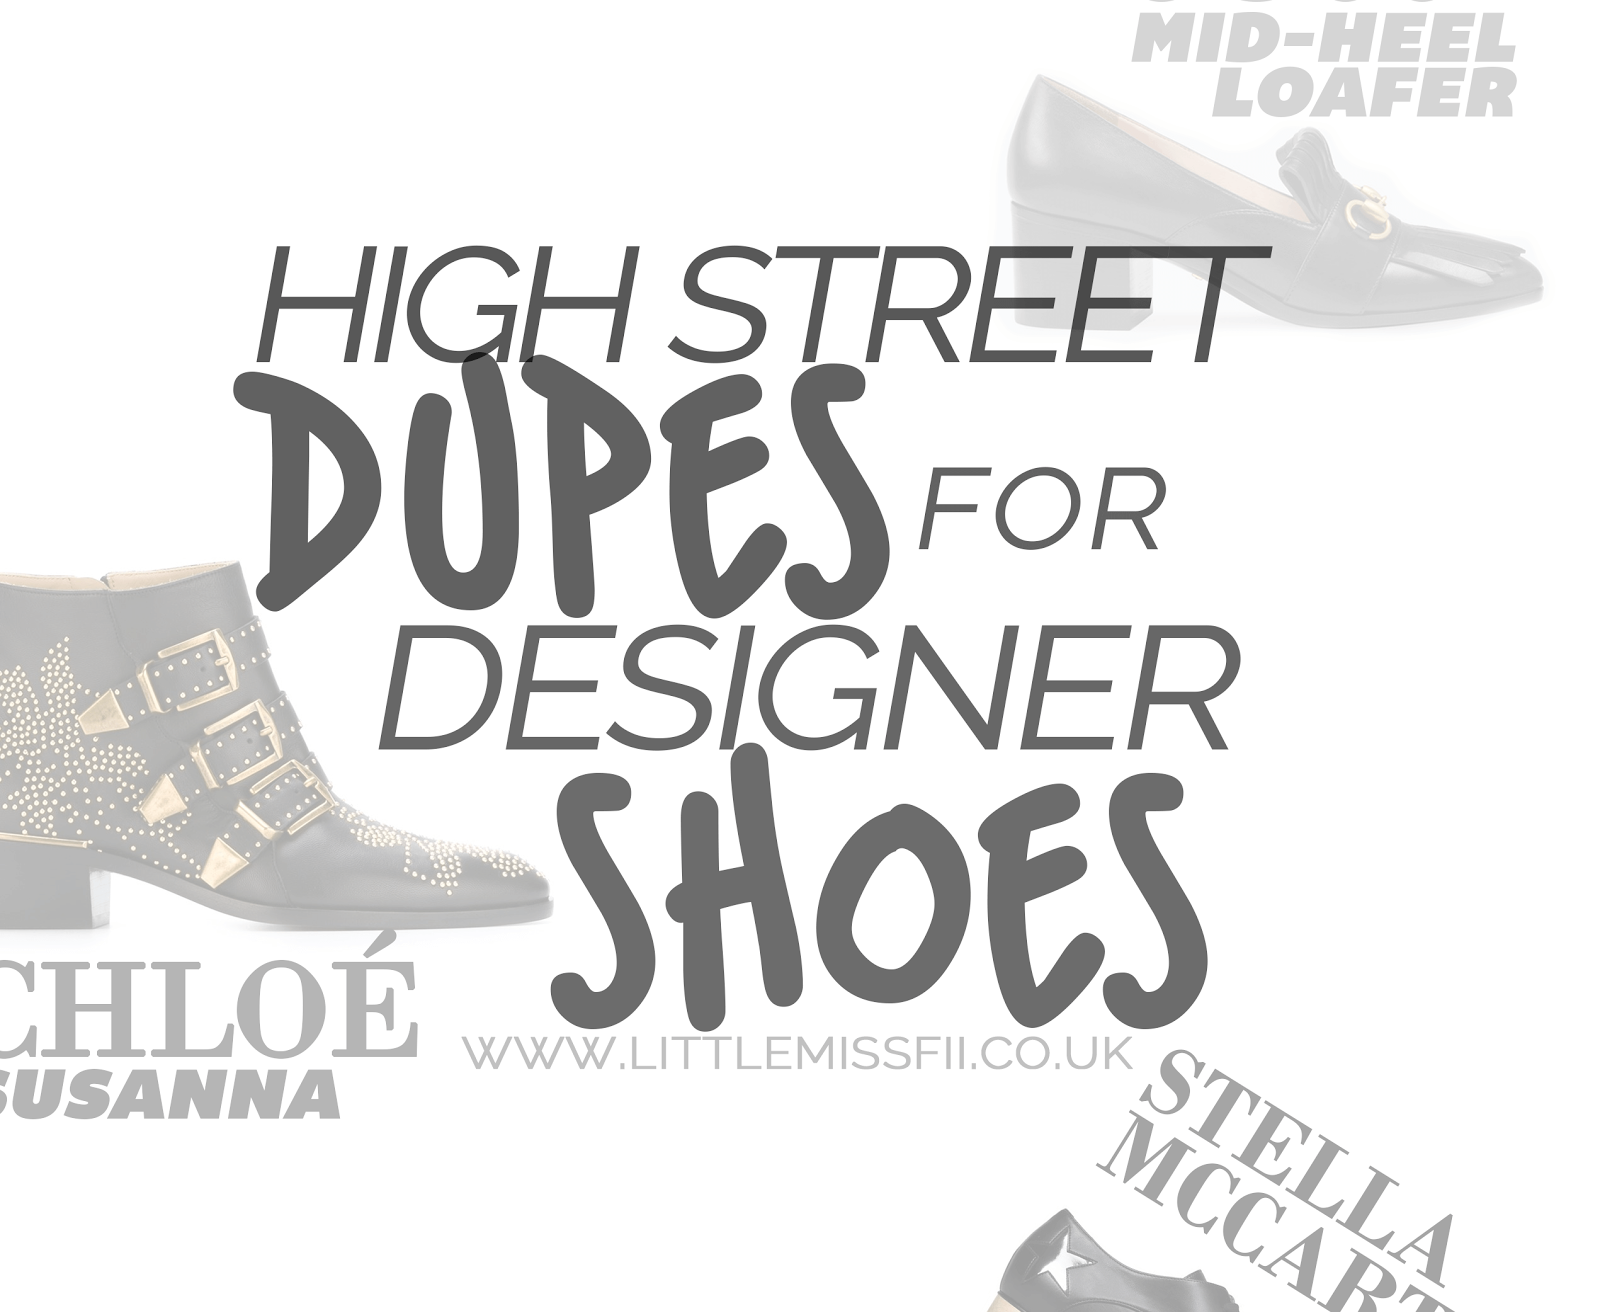 high street dupes for designer shoes